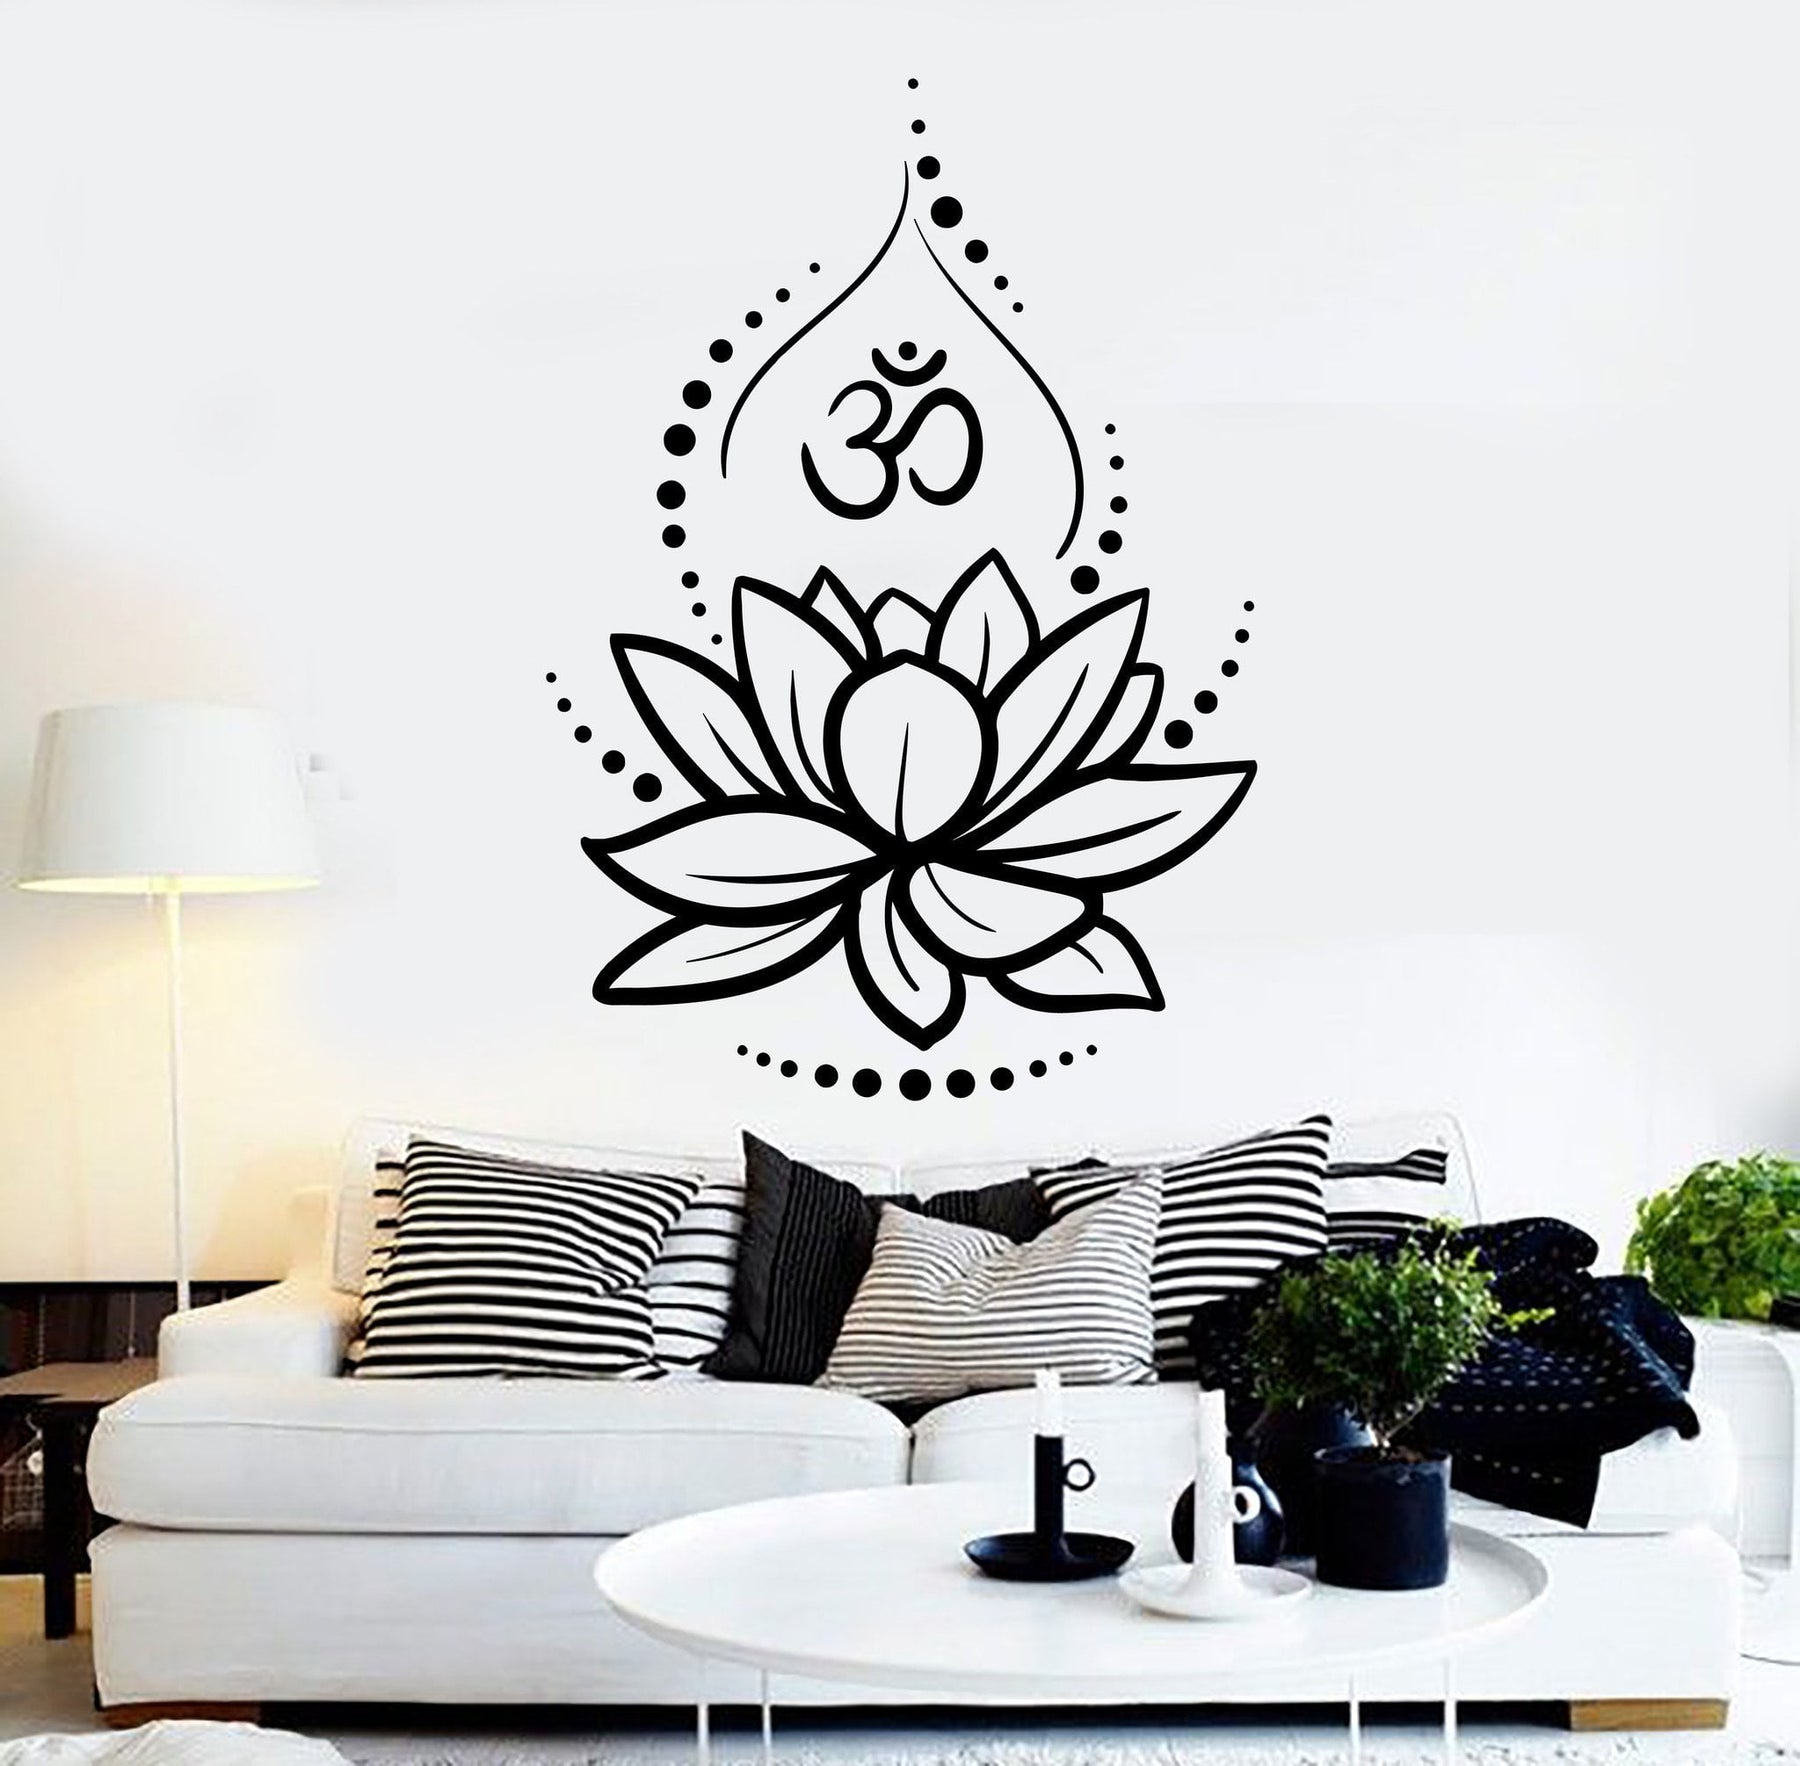 Vinyl wall decal lotus flower yoga hinduism hindu om symbol stickers unique gift ig4625